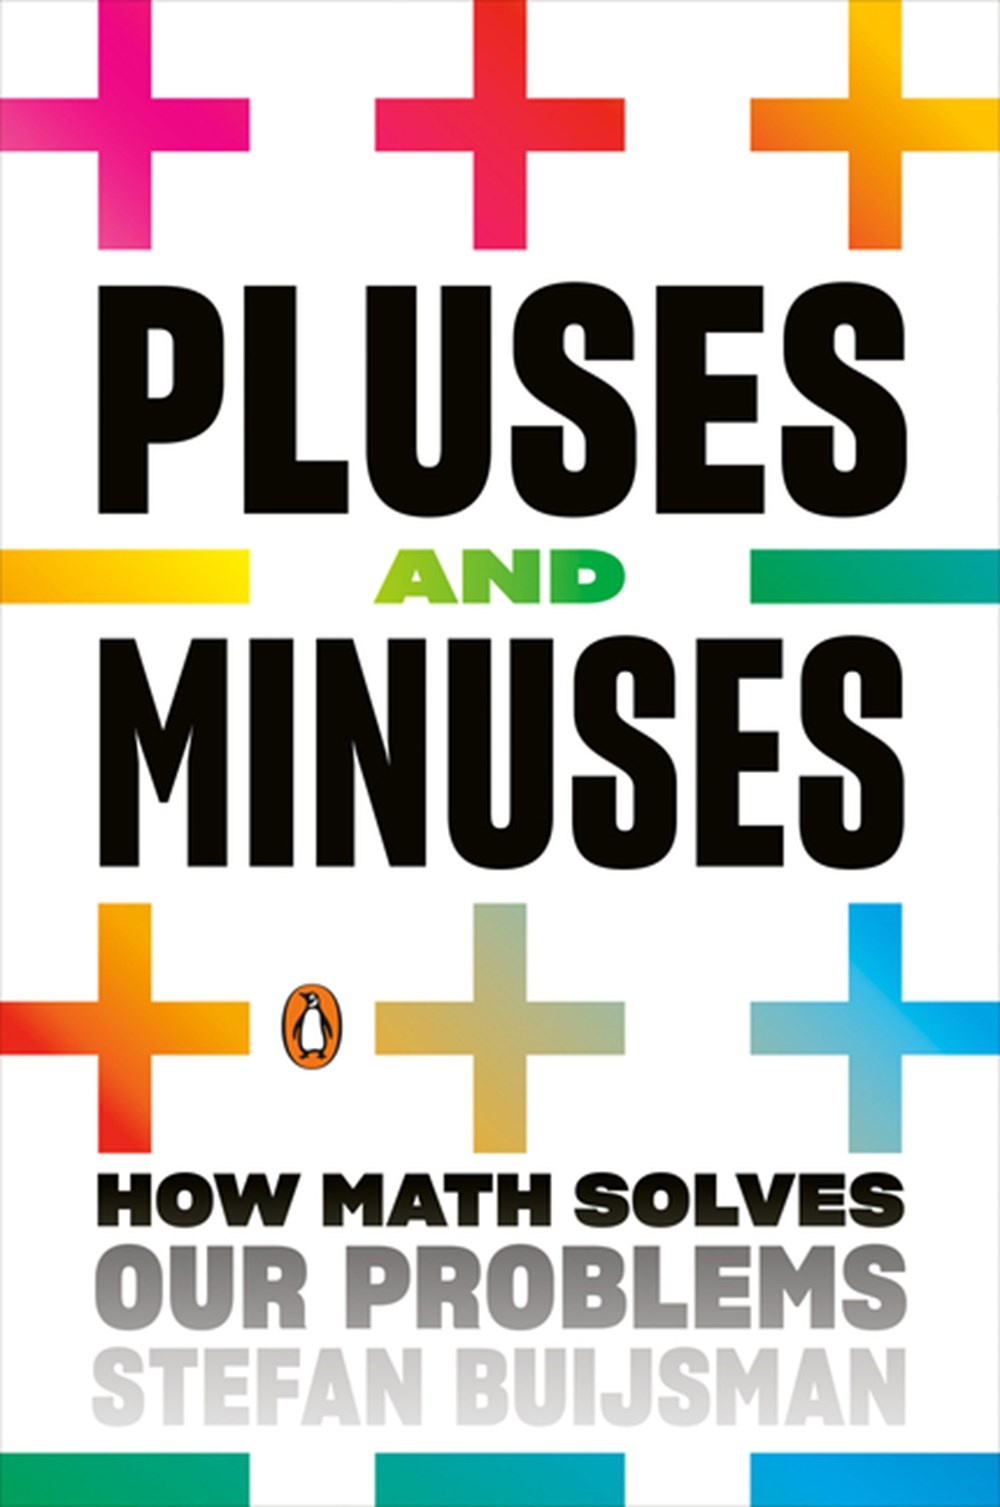 Pluses and Minuses: How Math Solves Our Problems